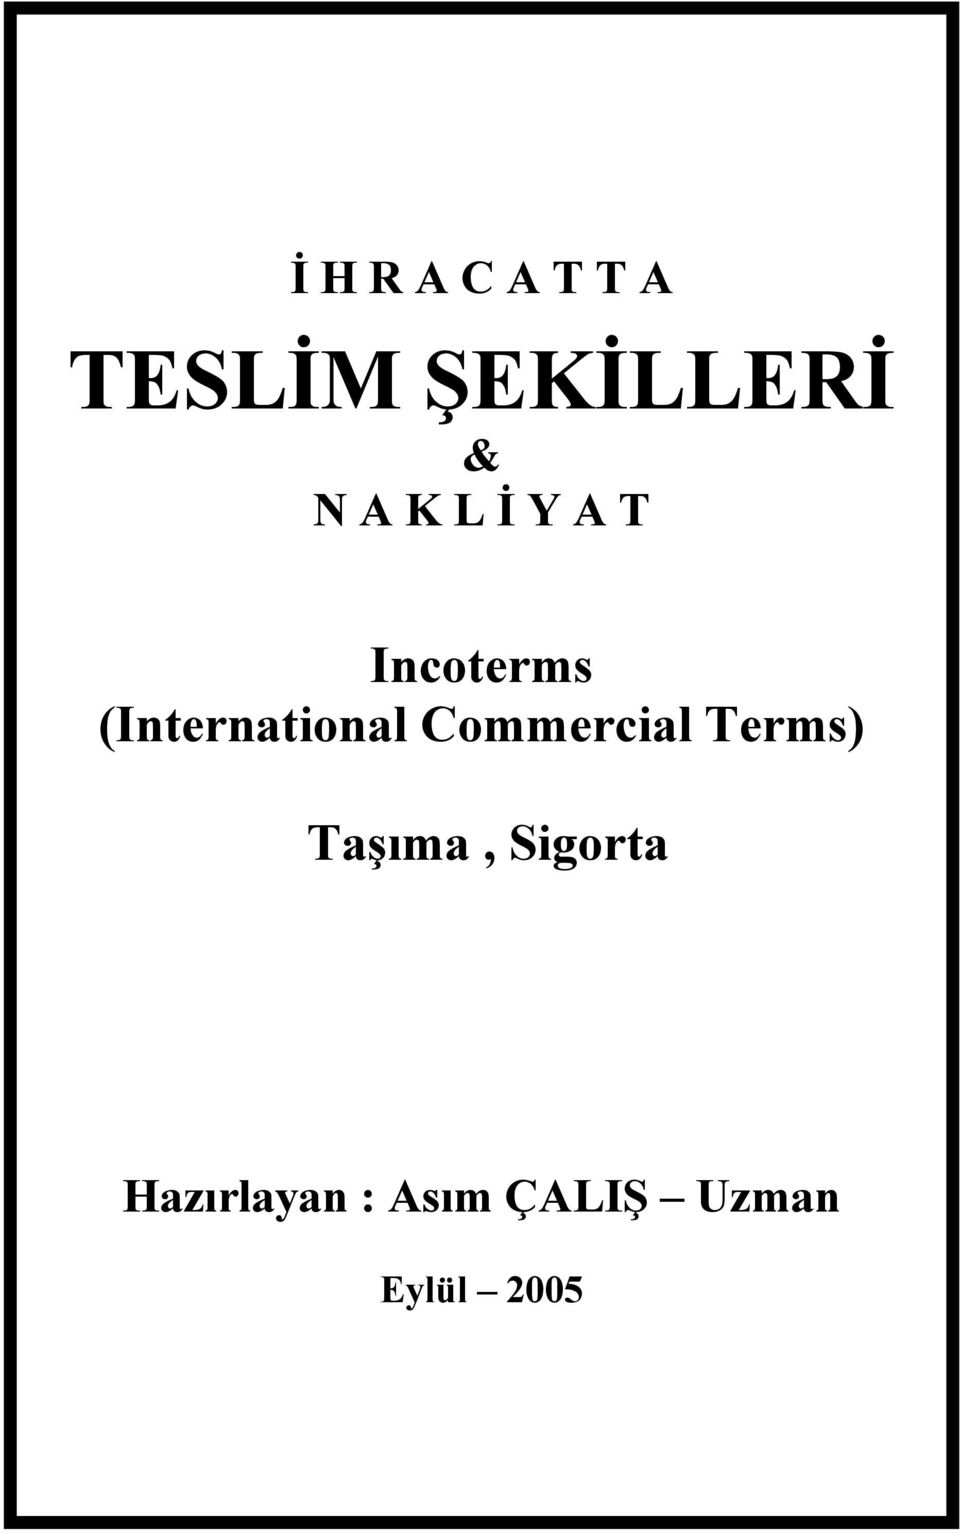 (International Commercial Terms)